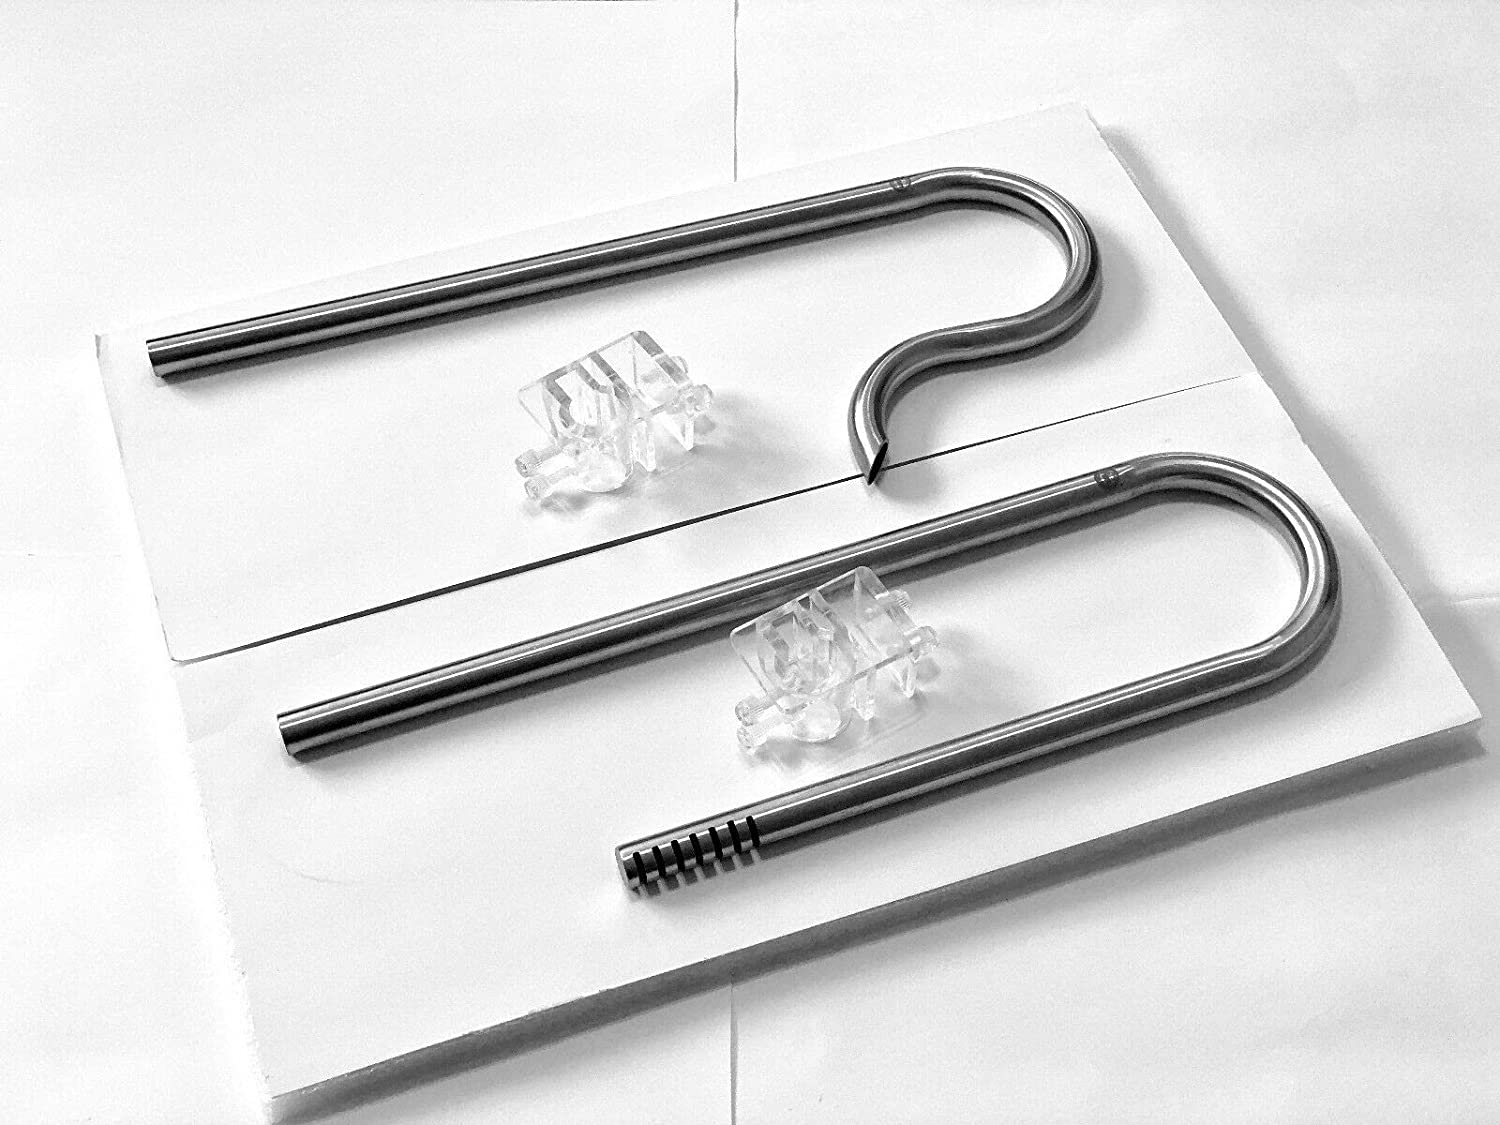 12//16mm Tube 13mm Set JungleAquashrimp Stainless Steel Pipes Inflow Outflow Pipes for Aquarium Filters Planted Fish Tank